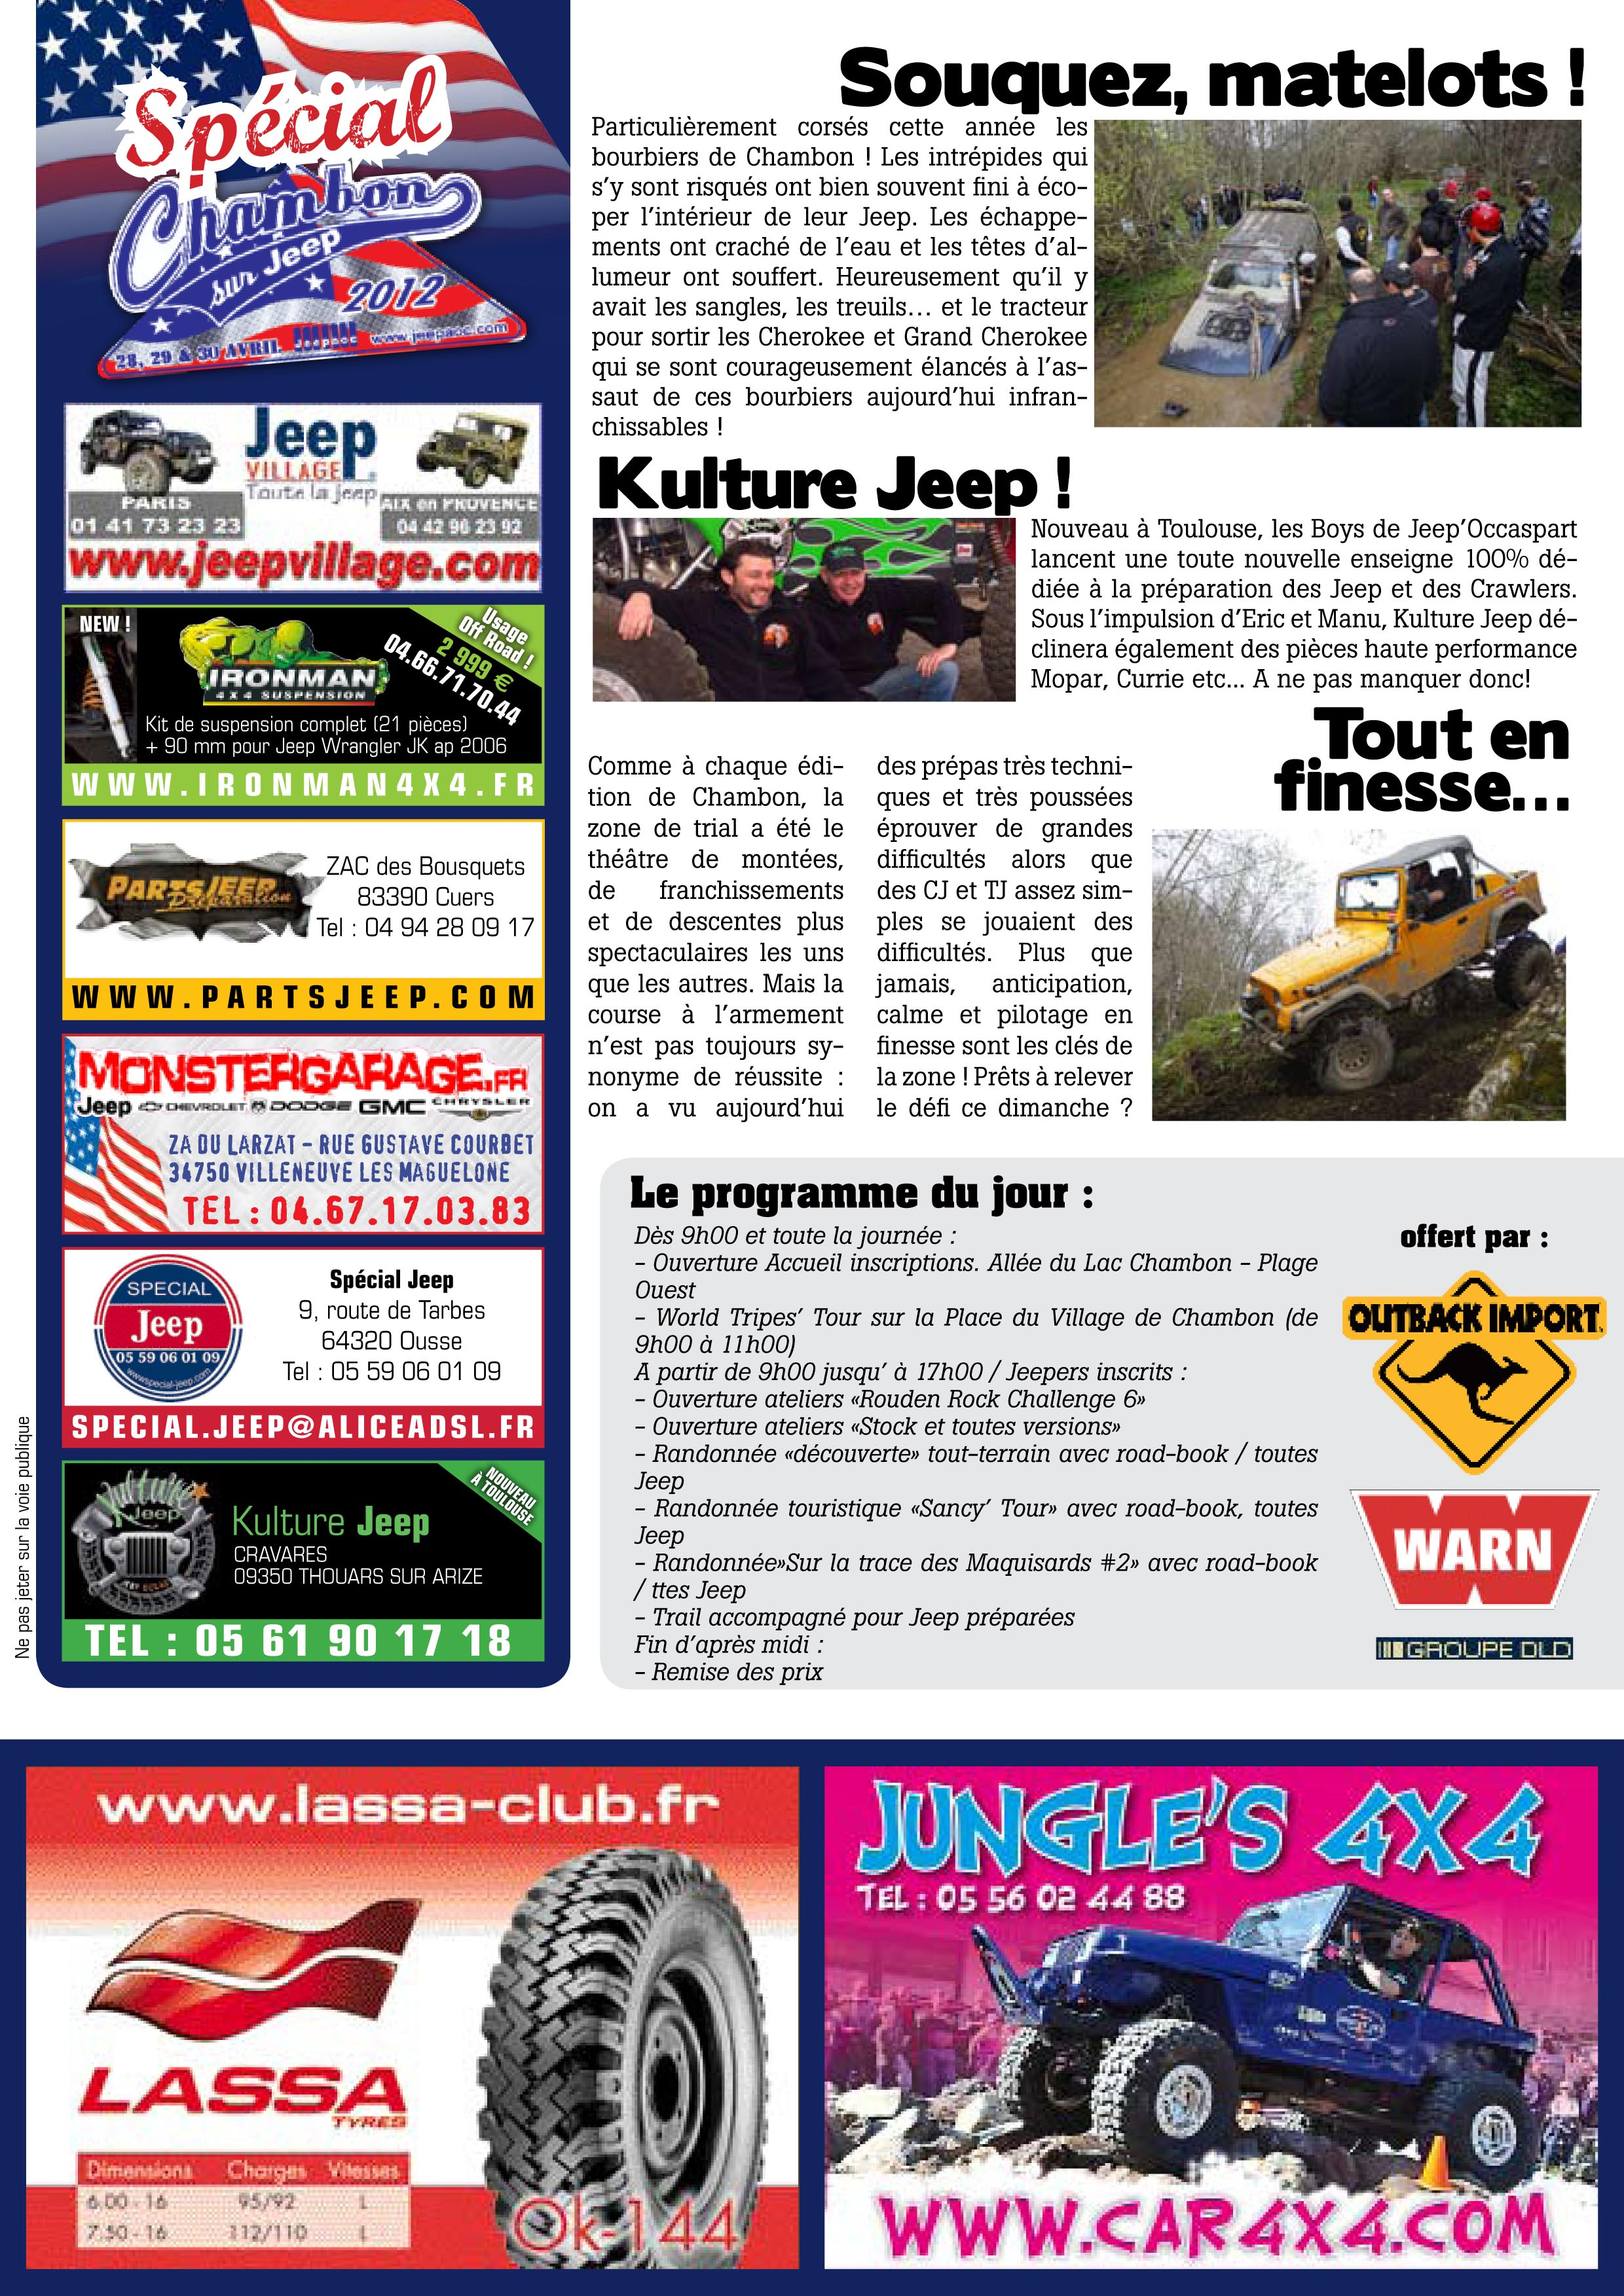 Newsletter Chambon 2012 #2 page 2